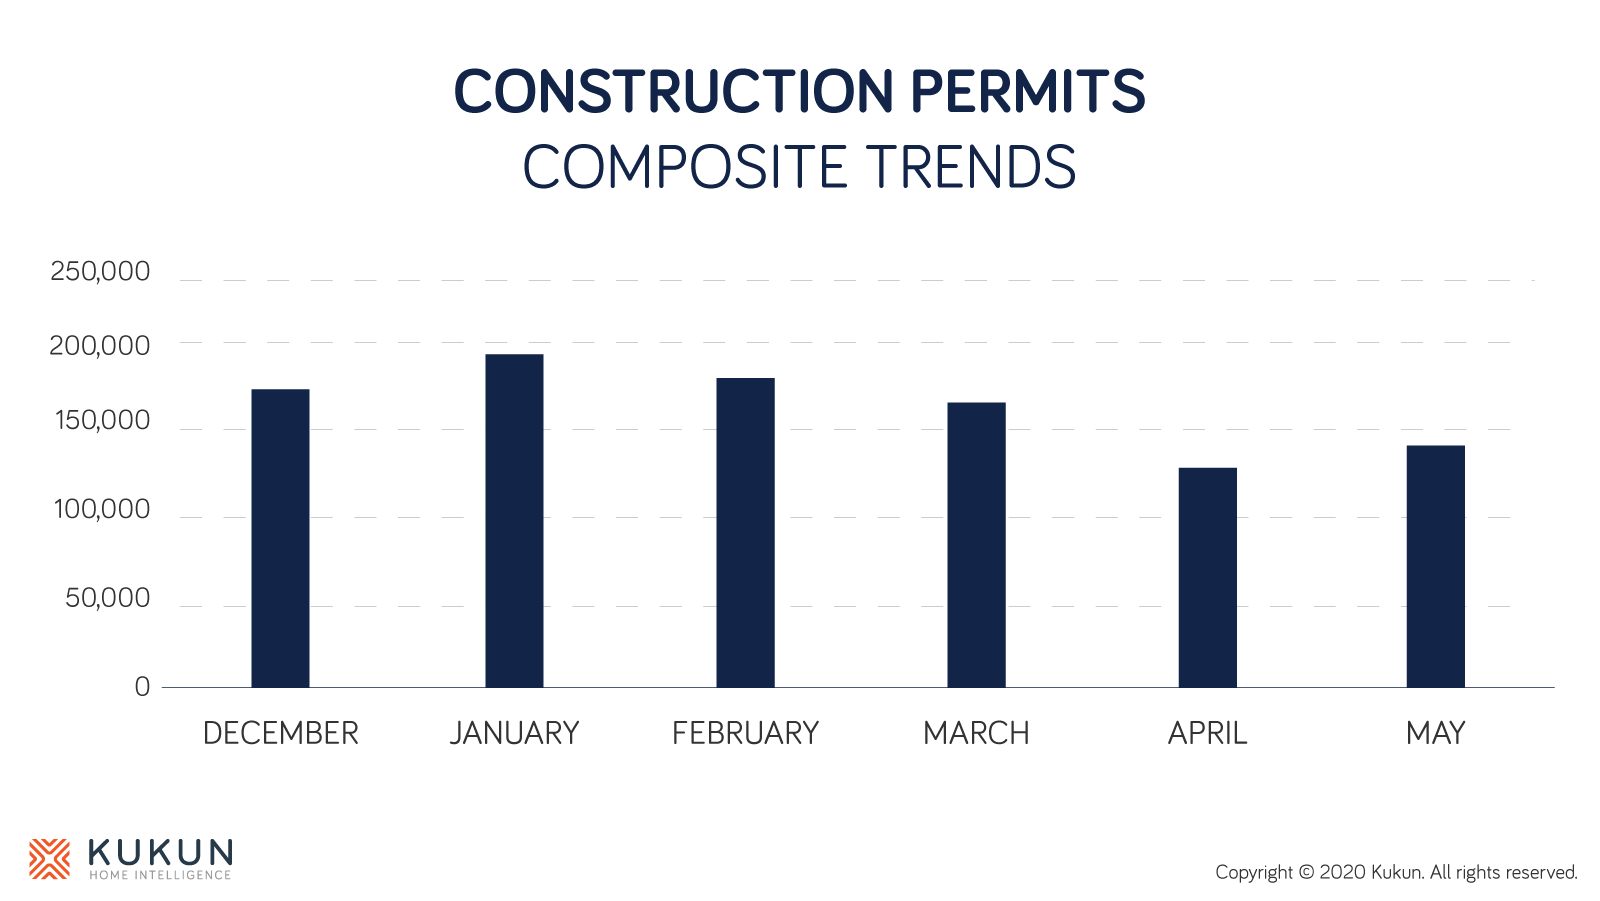 Construction monthly permits